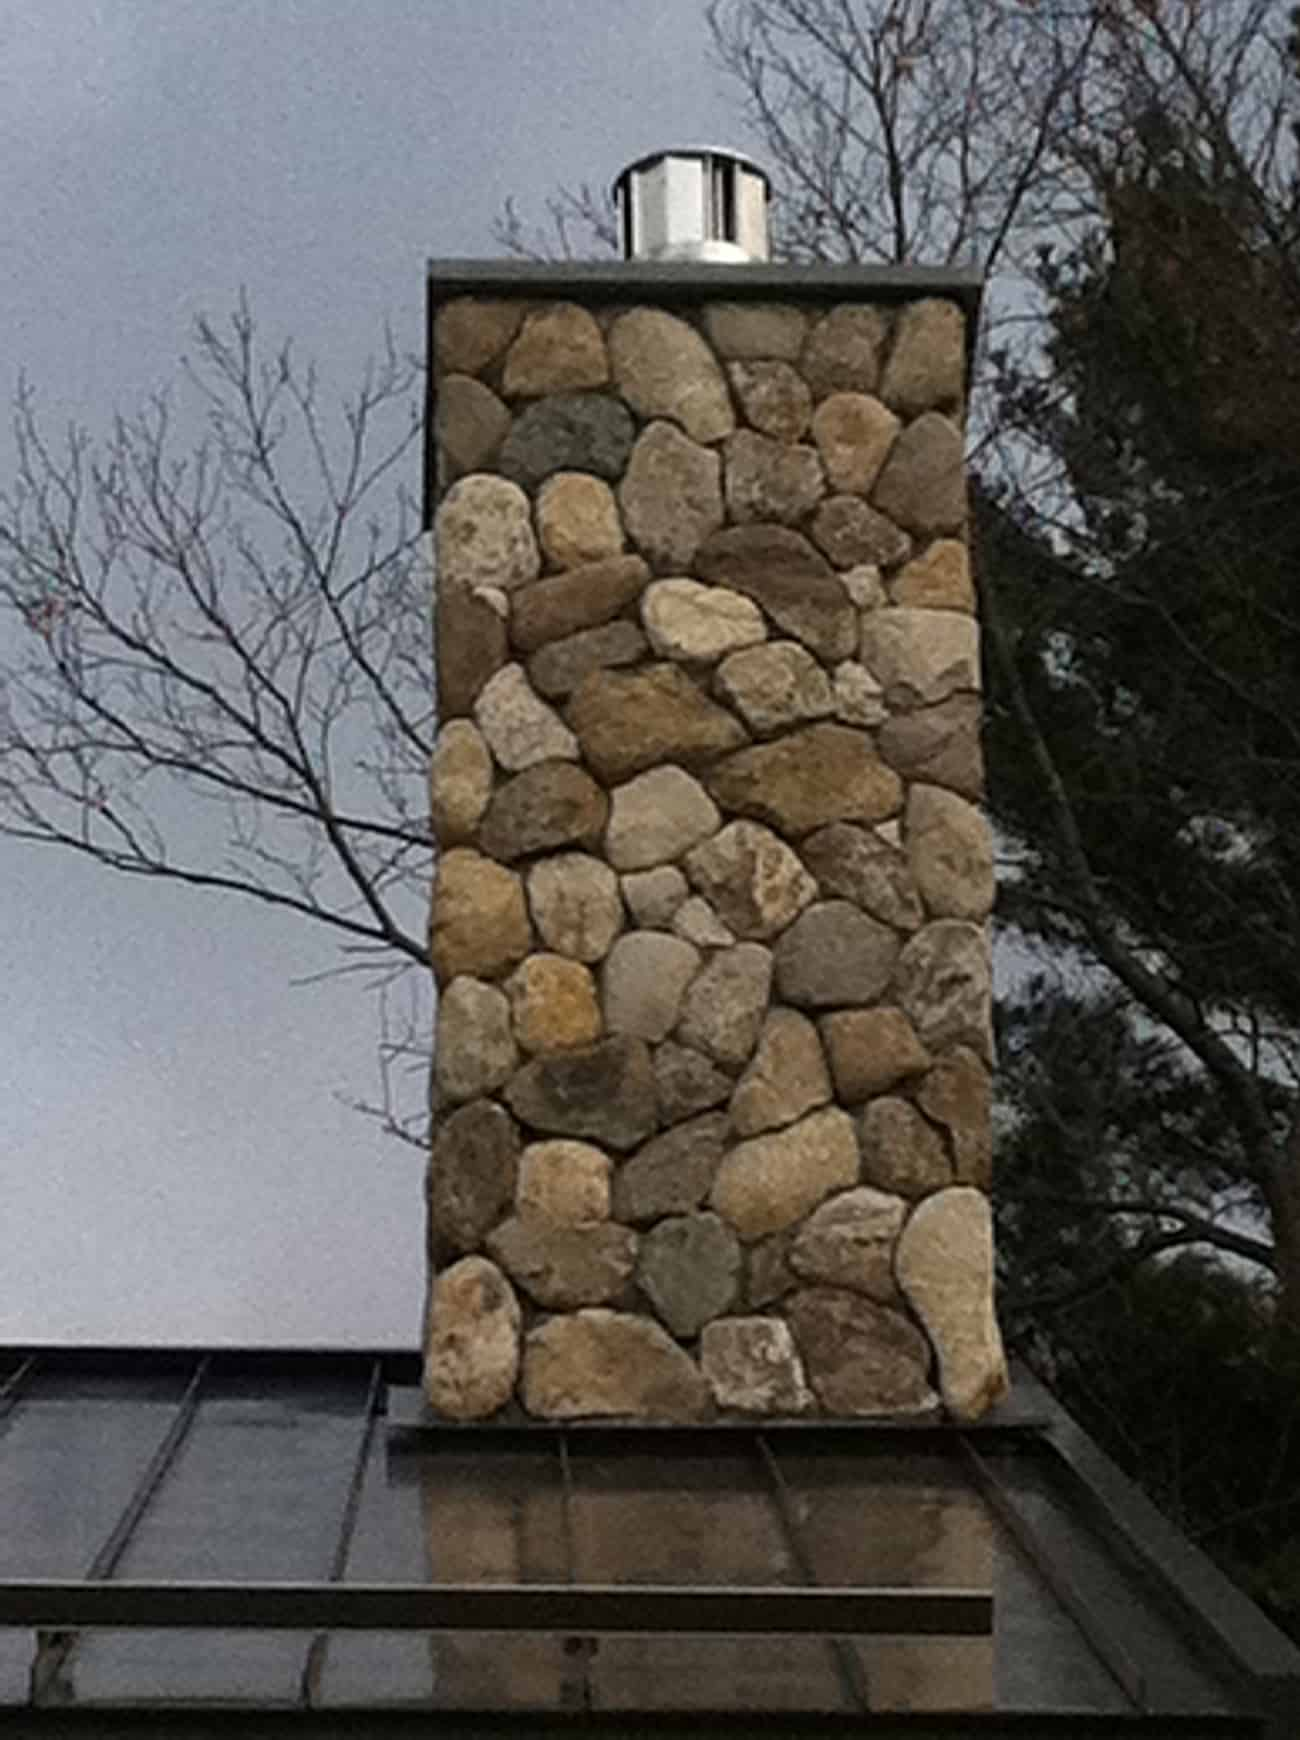 Chimney rebuilt with natural rocks